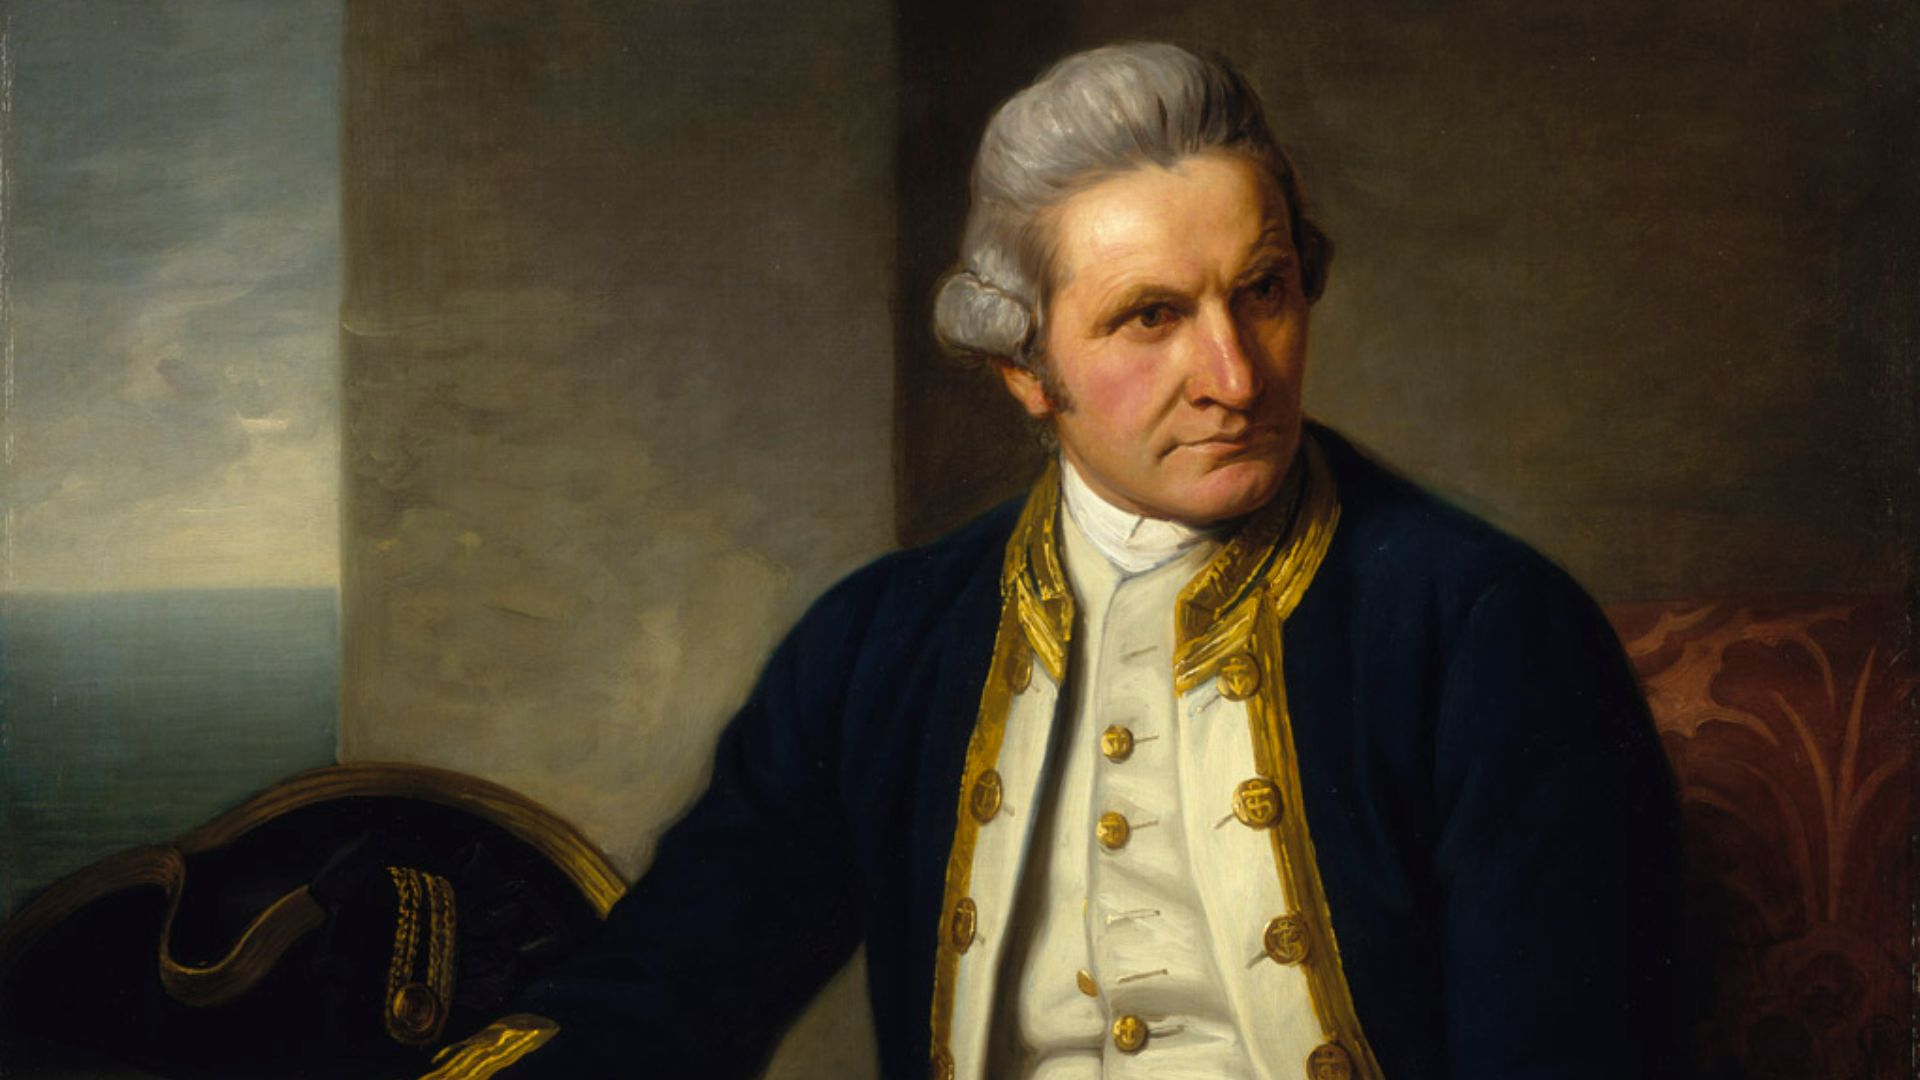 Massive gulf between ship and shore when remembering Captain Cook